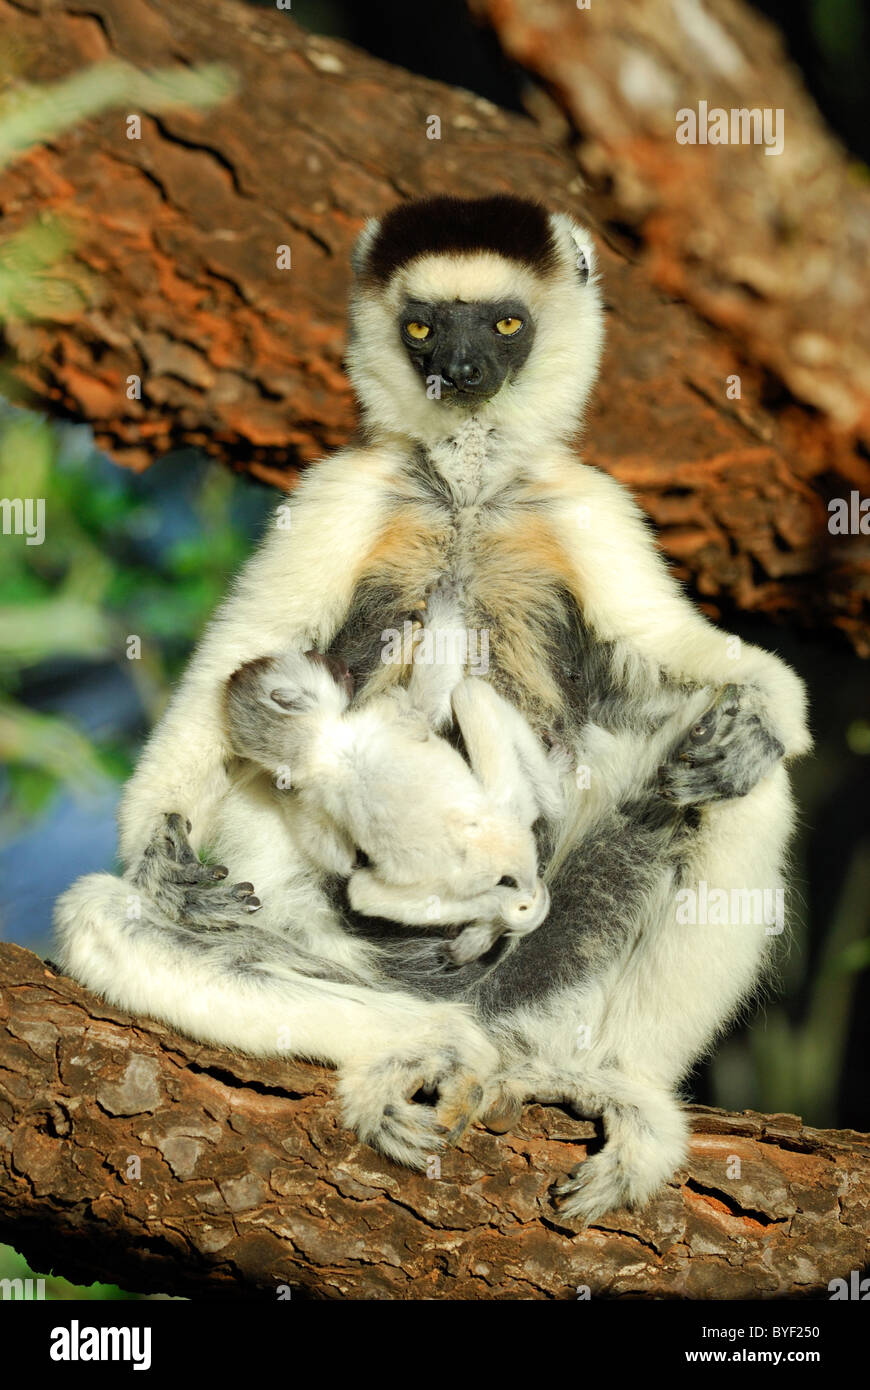 Tired Mother Verreaux's Sifaka (Propithecus verreauxi) with her baby, Madagascar - Stock Image